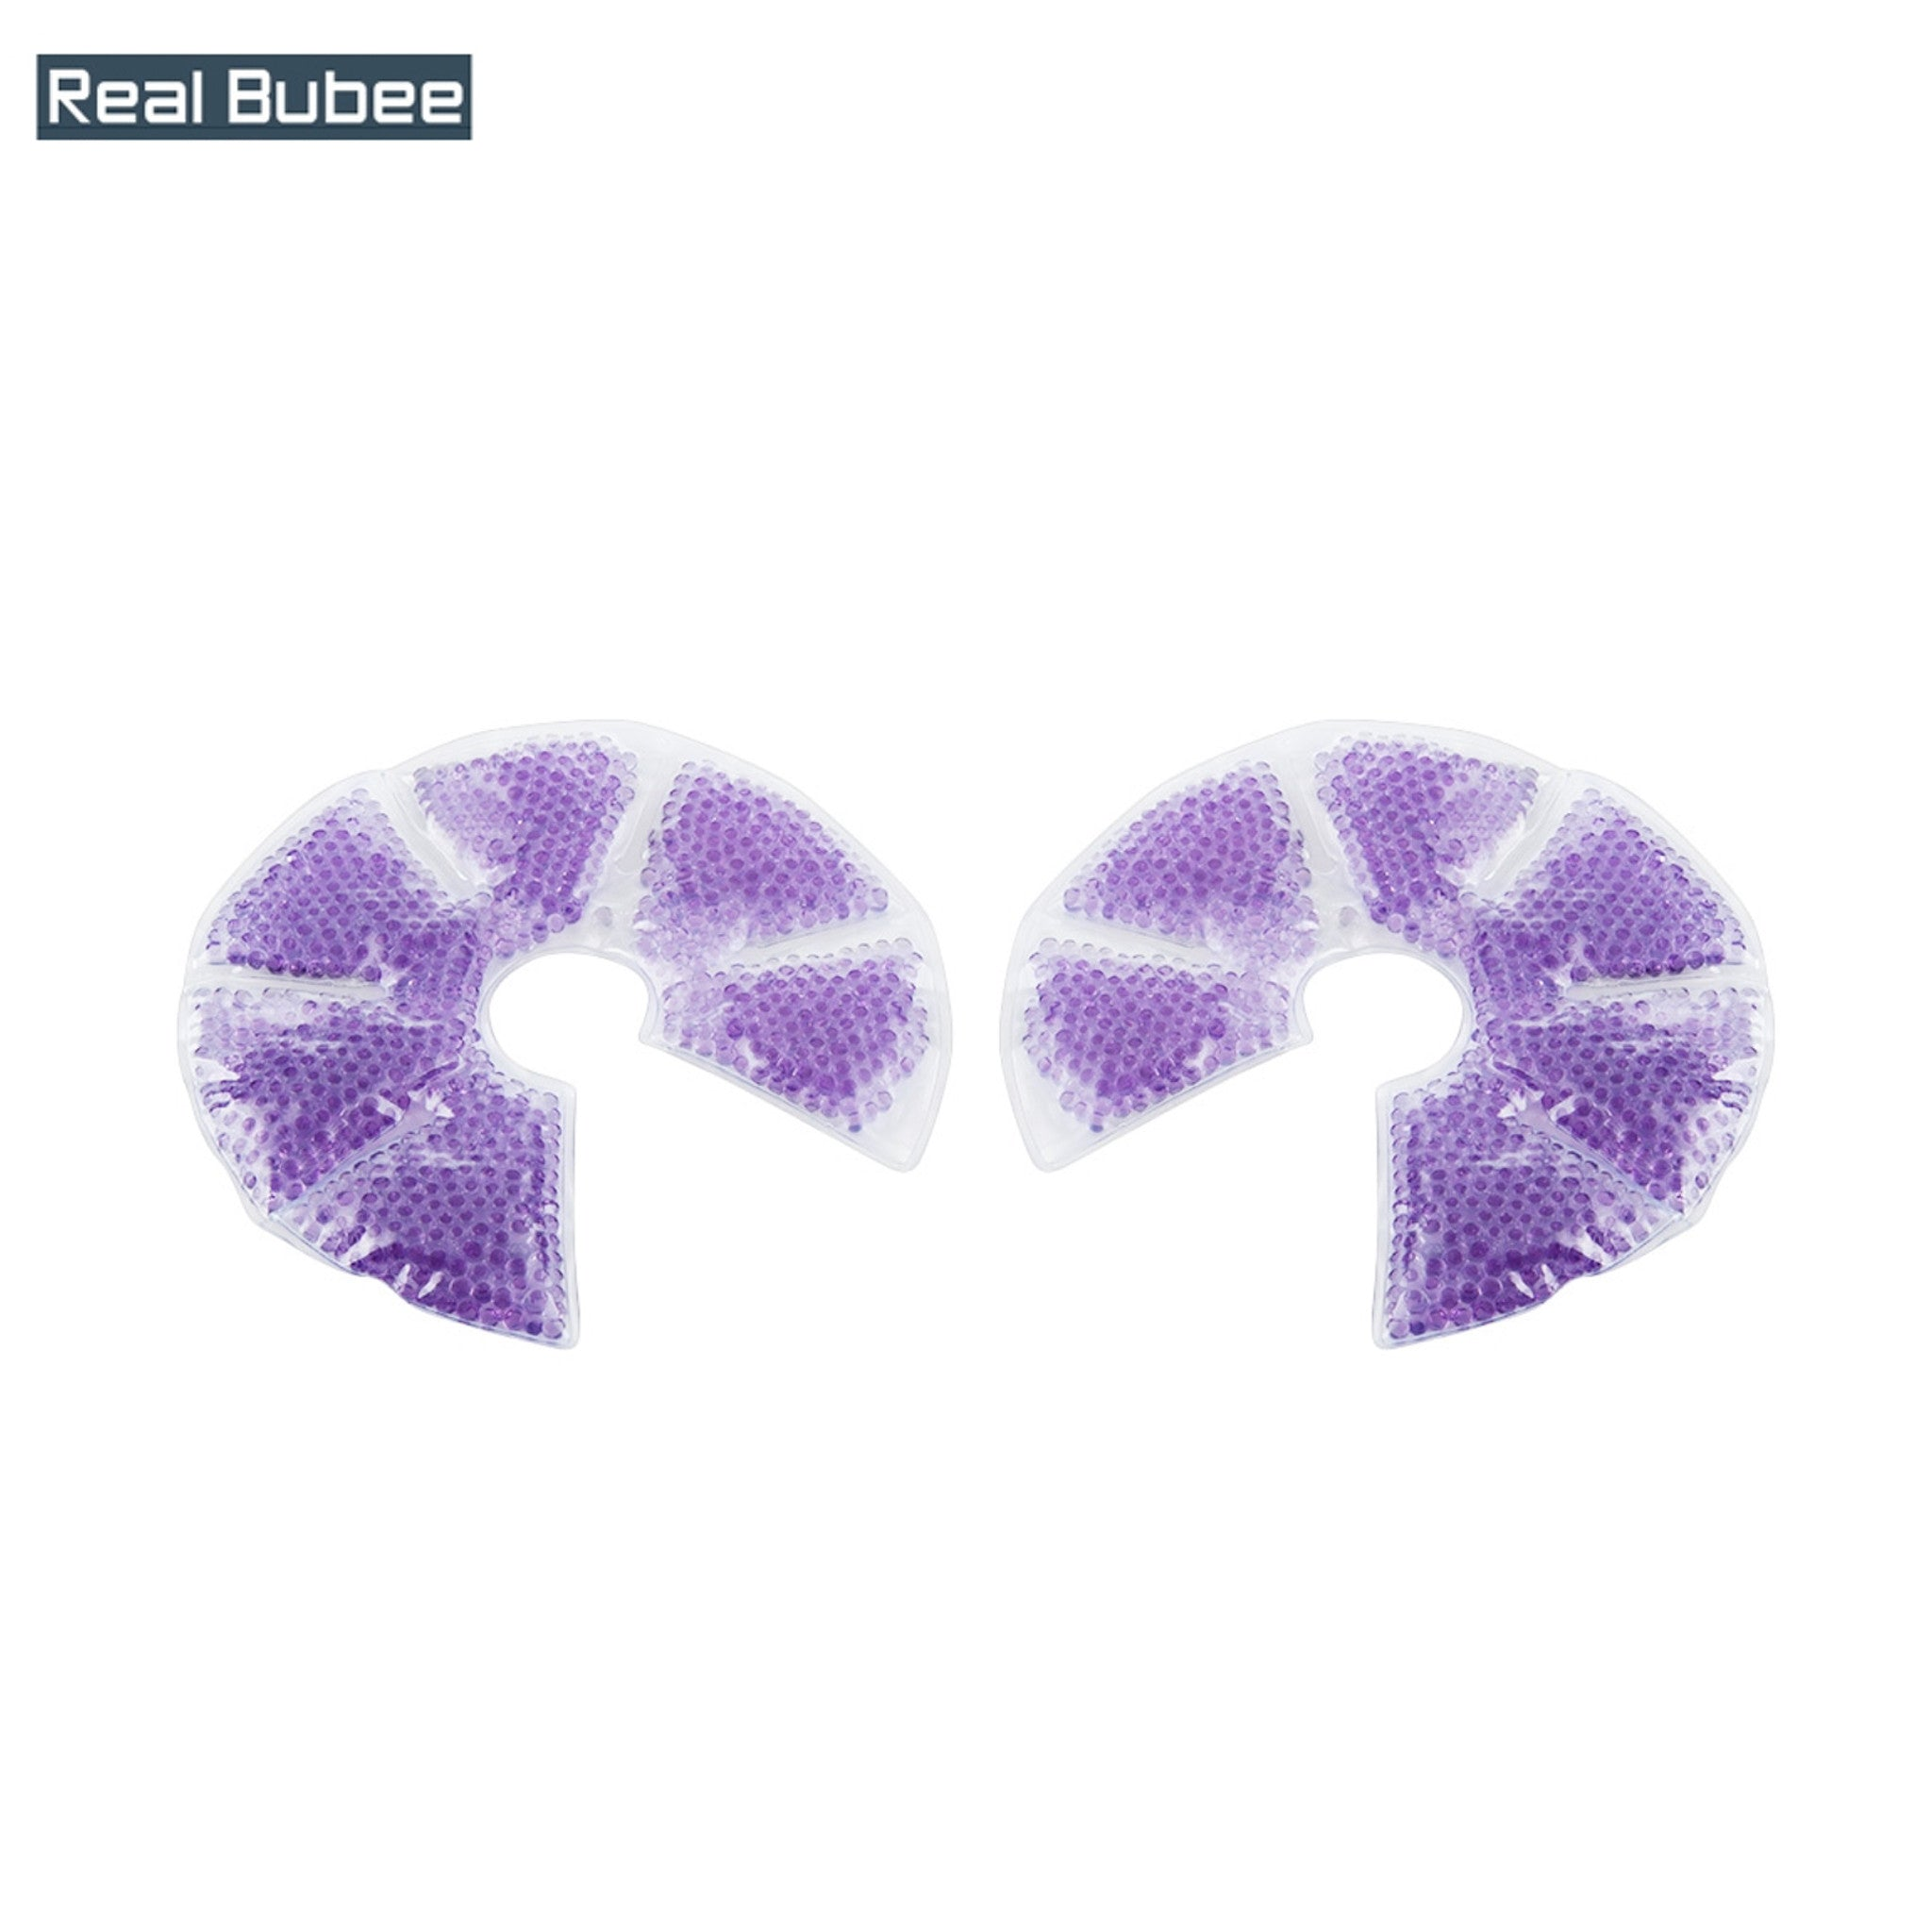 real bubee breast therapy pad [2 pc/pack]